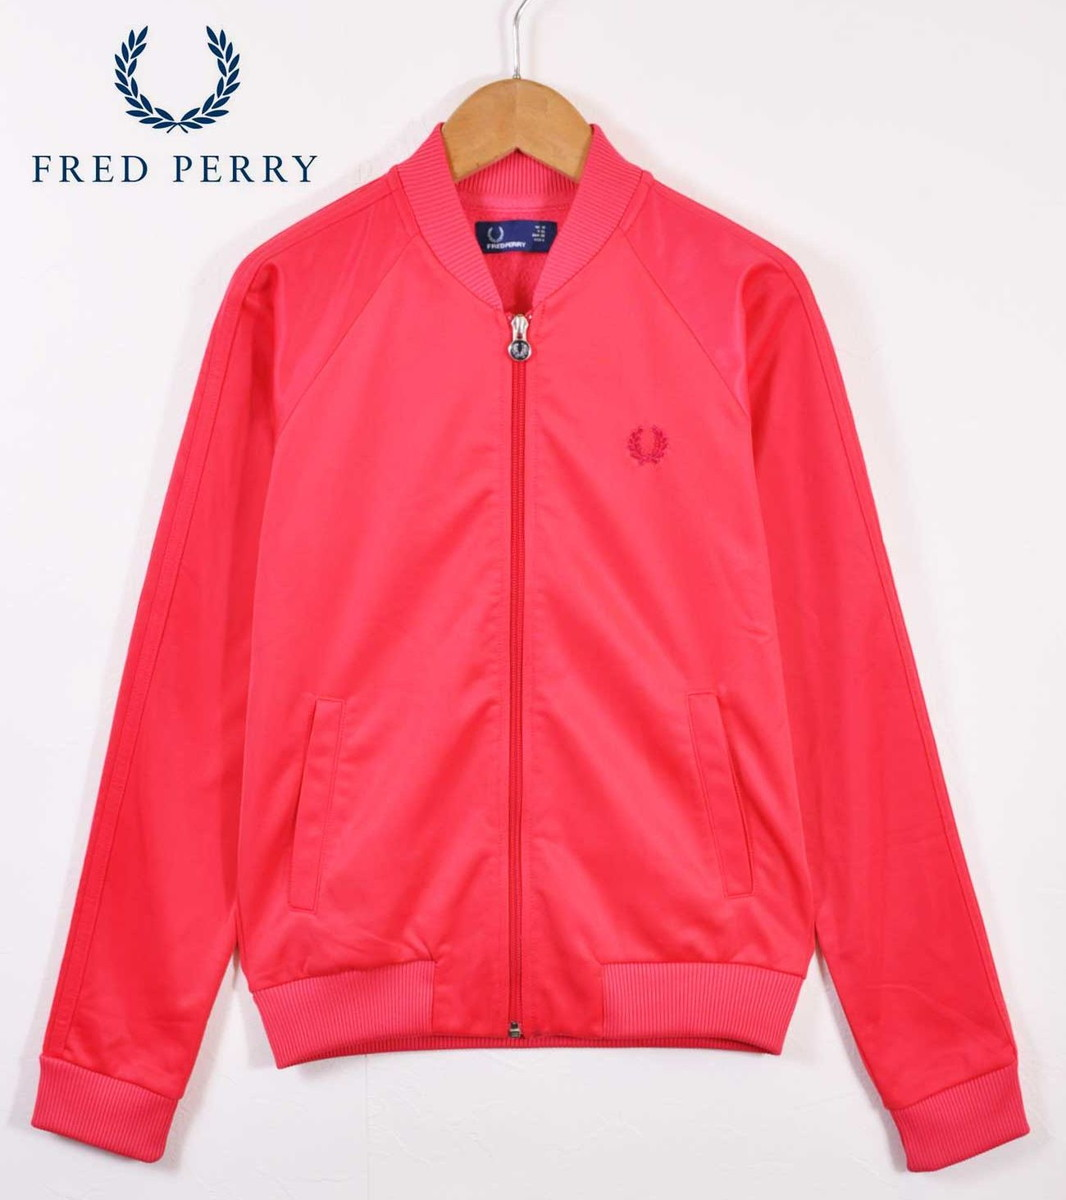 53816b3b USED CLOTHING PENGUINTRIPPER: FRED PERRY Fred Perry jersey shiny Pink  Lady's S equivalency made in Portugal▽ | Rakuten Global Market